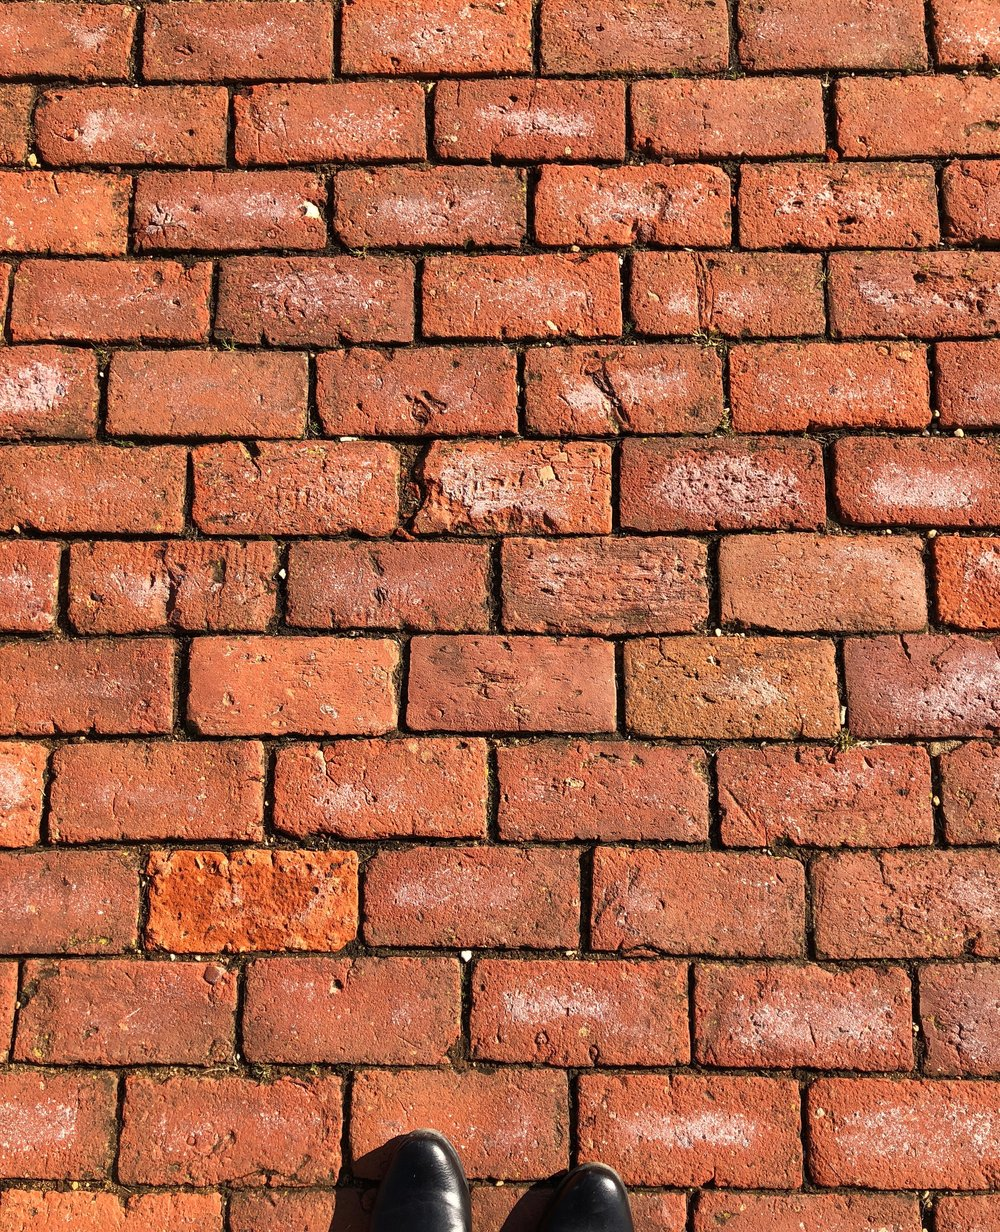 Brick pavers, Virginia